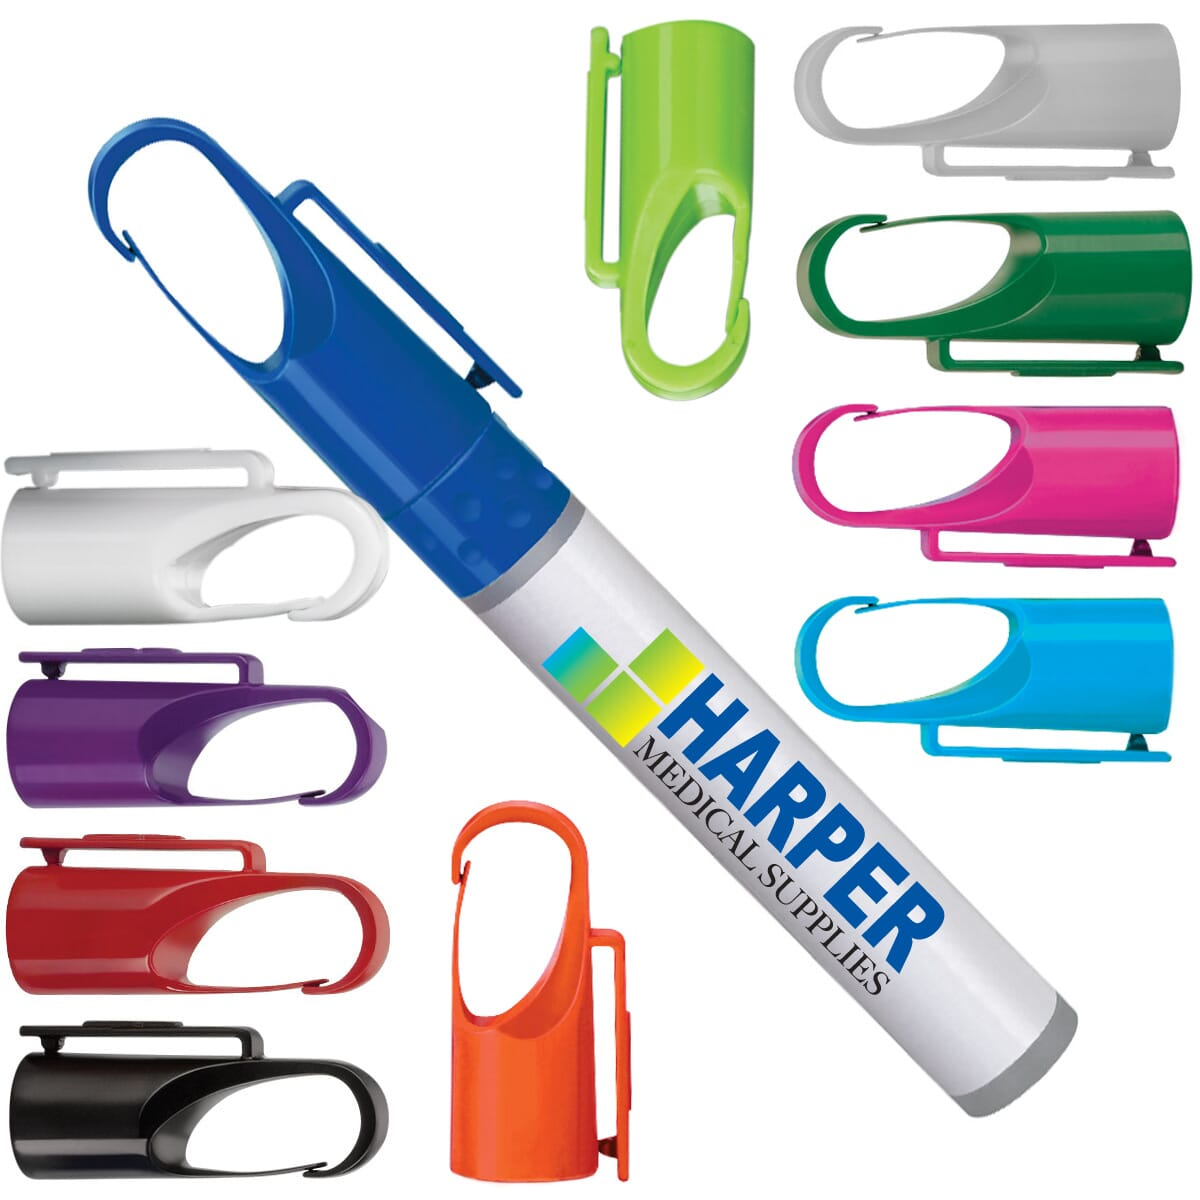 Sanitizer spray pen with logo